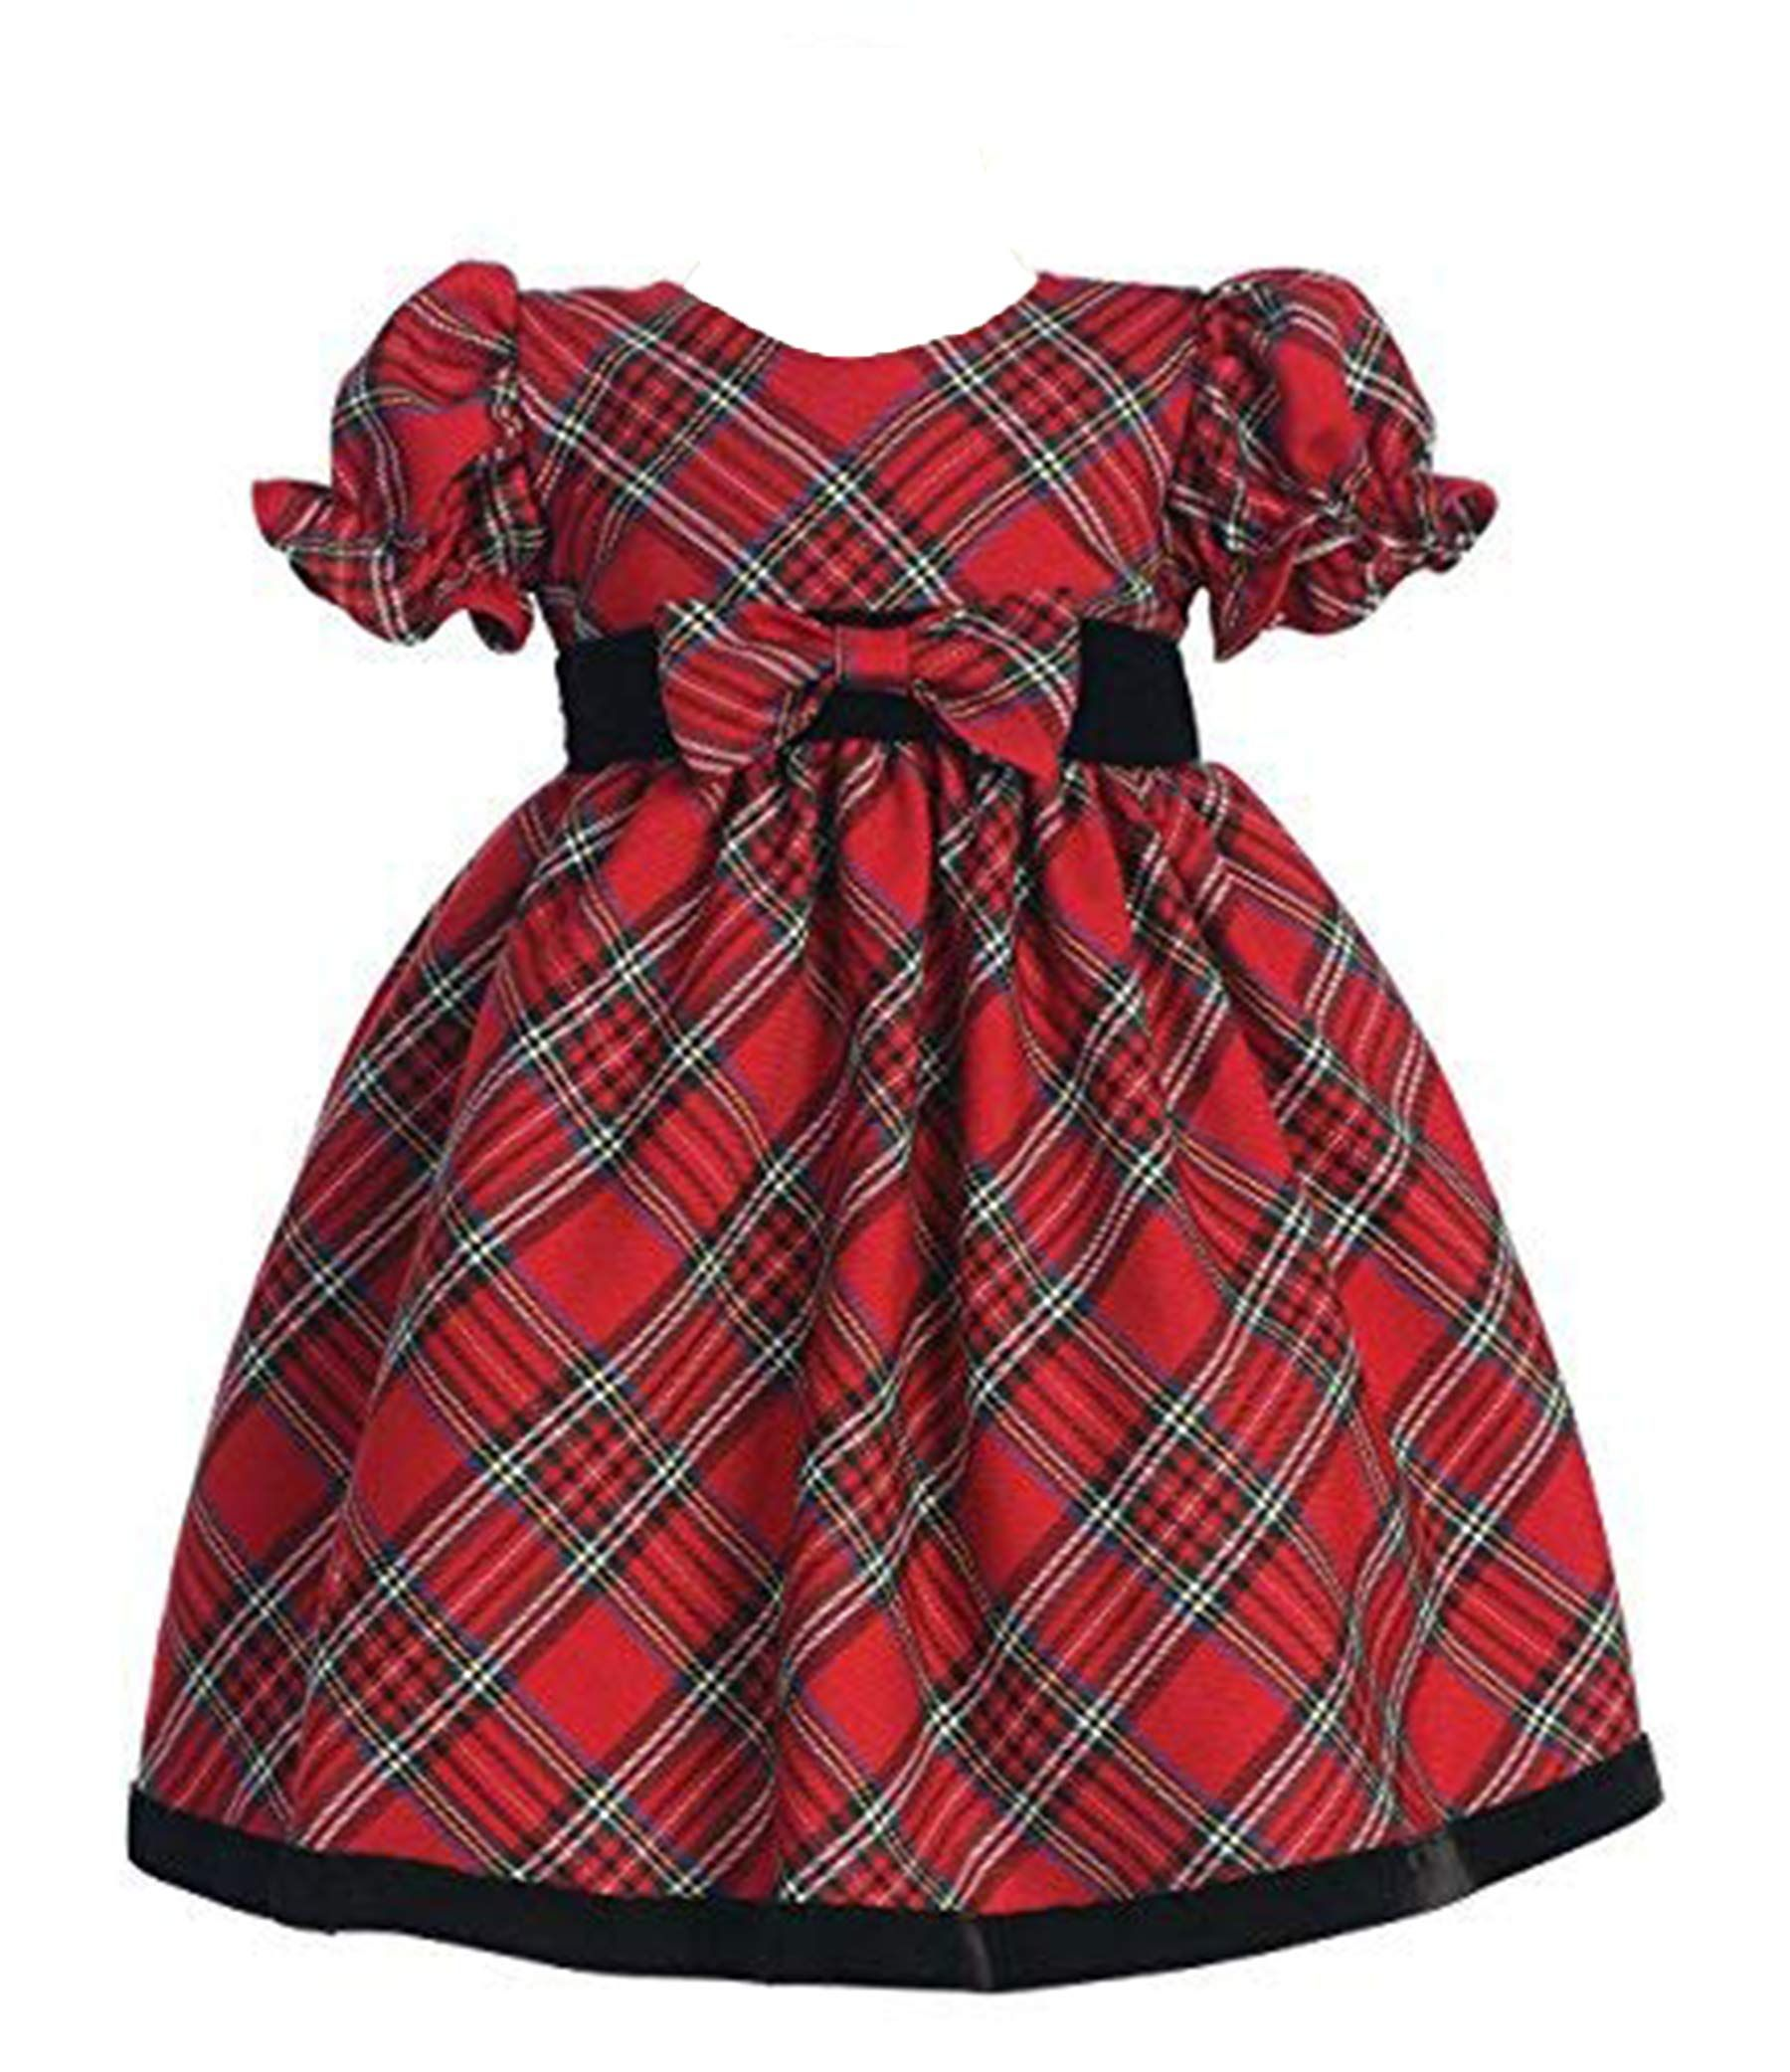 Plaid Holiday Christmas Baby Dress With Velvet Trim 4t Red Check This Awesome Produc Toddler Christmas Dress Girls Christmas Dresses Christmas Dress Baby [ 2083 x 1800 Pixel ]